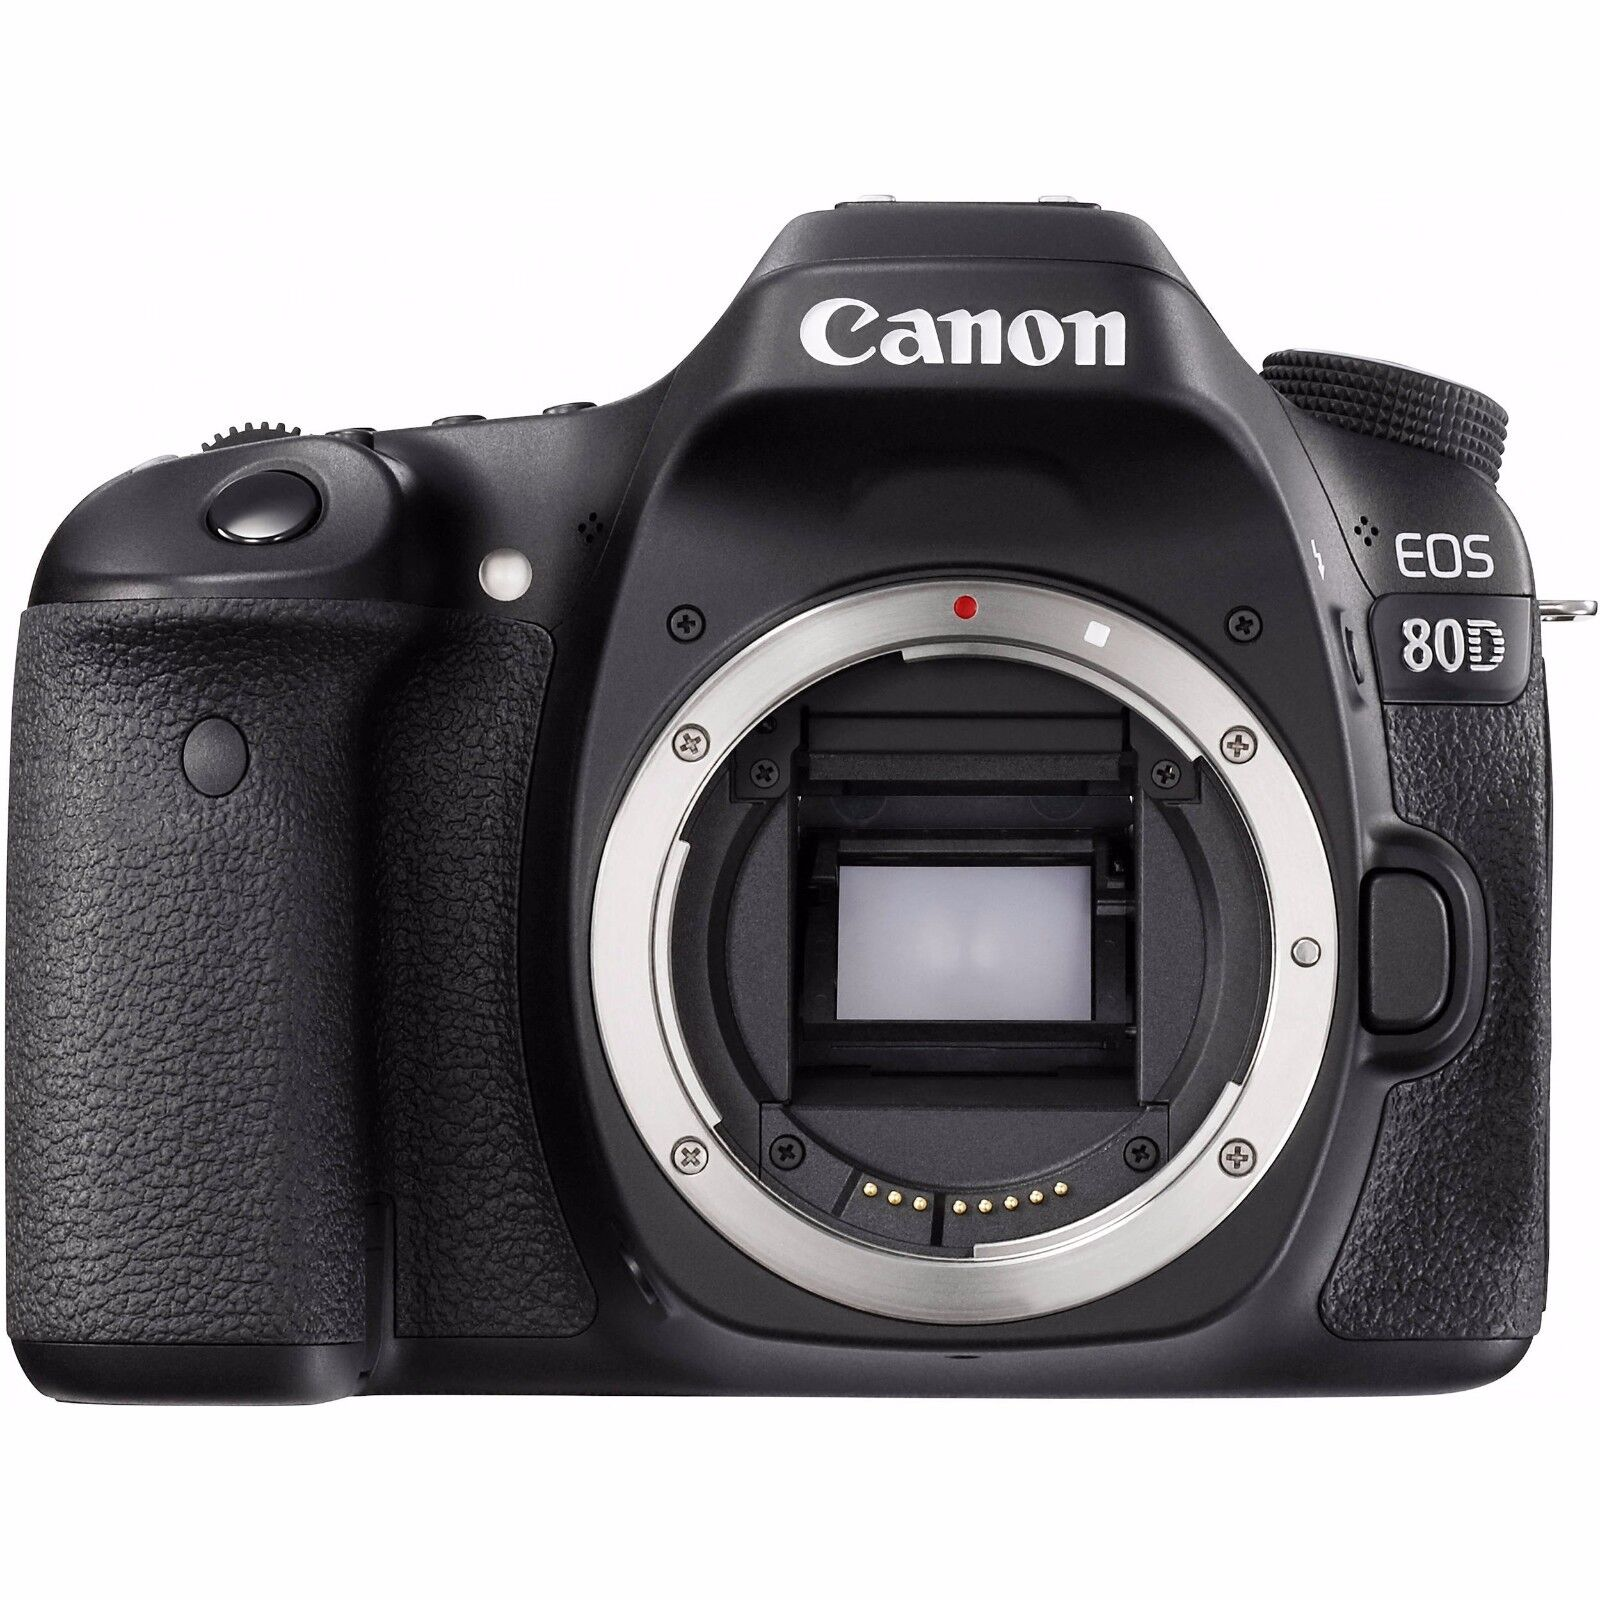 Prime Summer Day Deal Sale Canon Eos 80D Dslr Camera 24.2 Mp